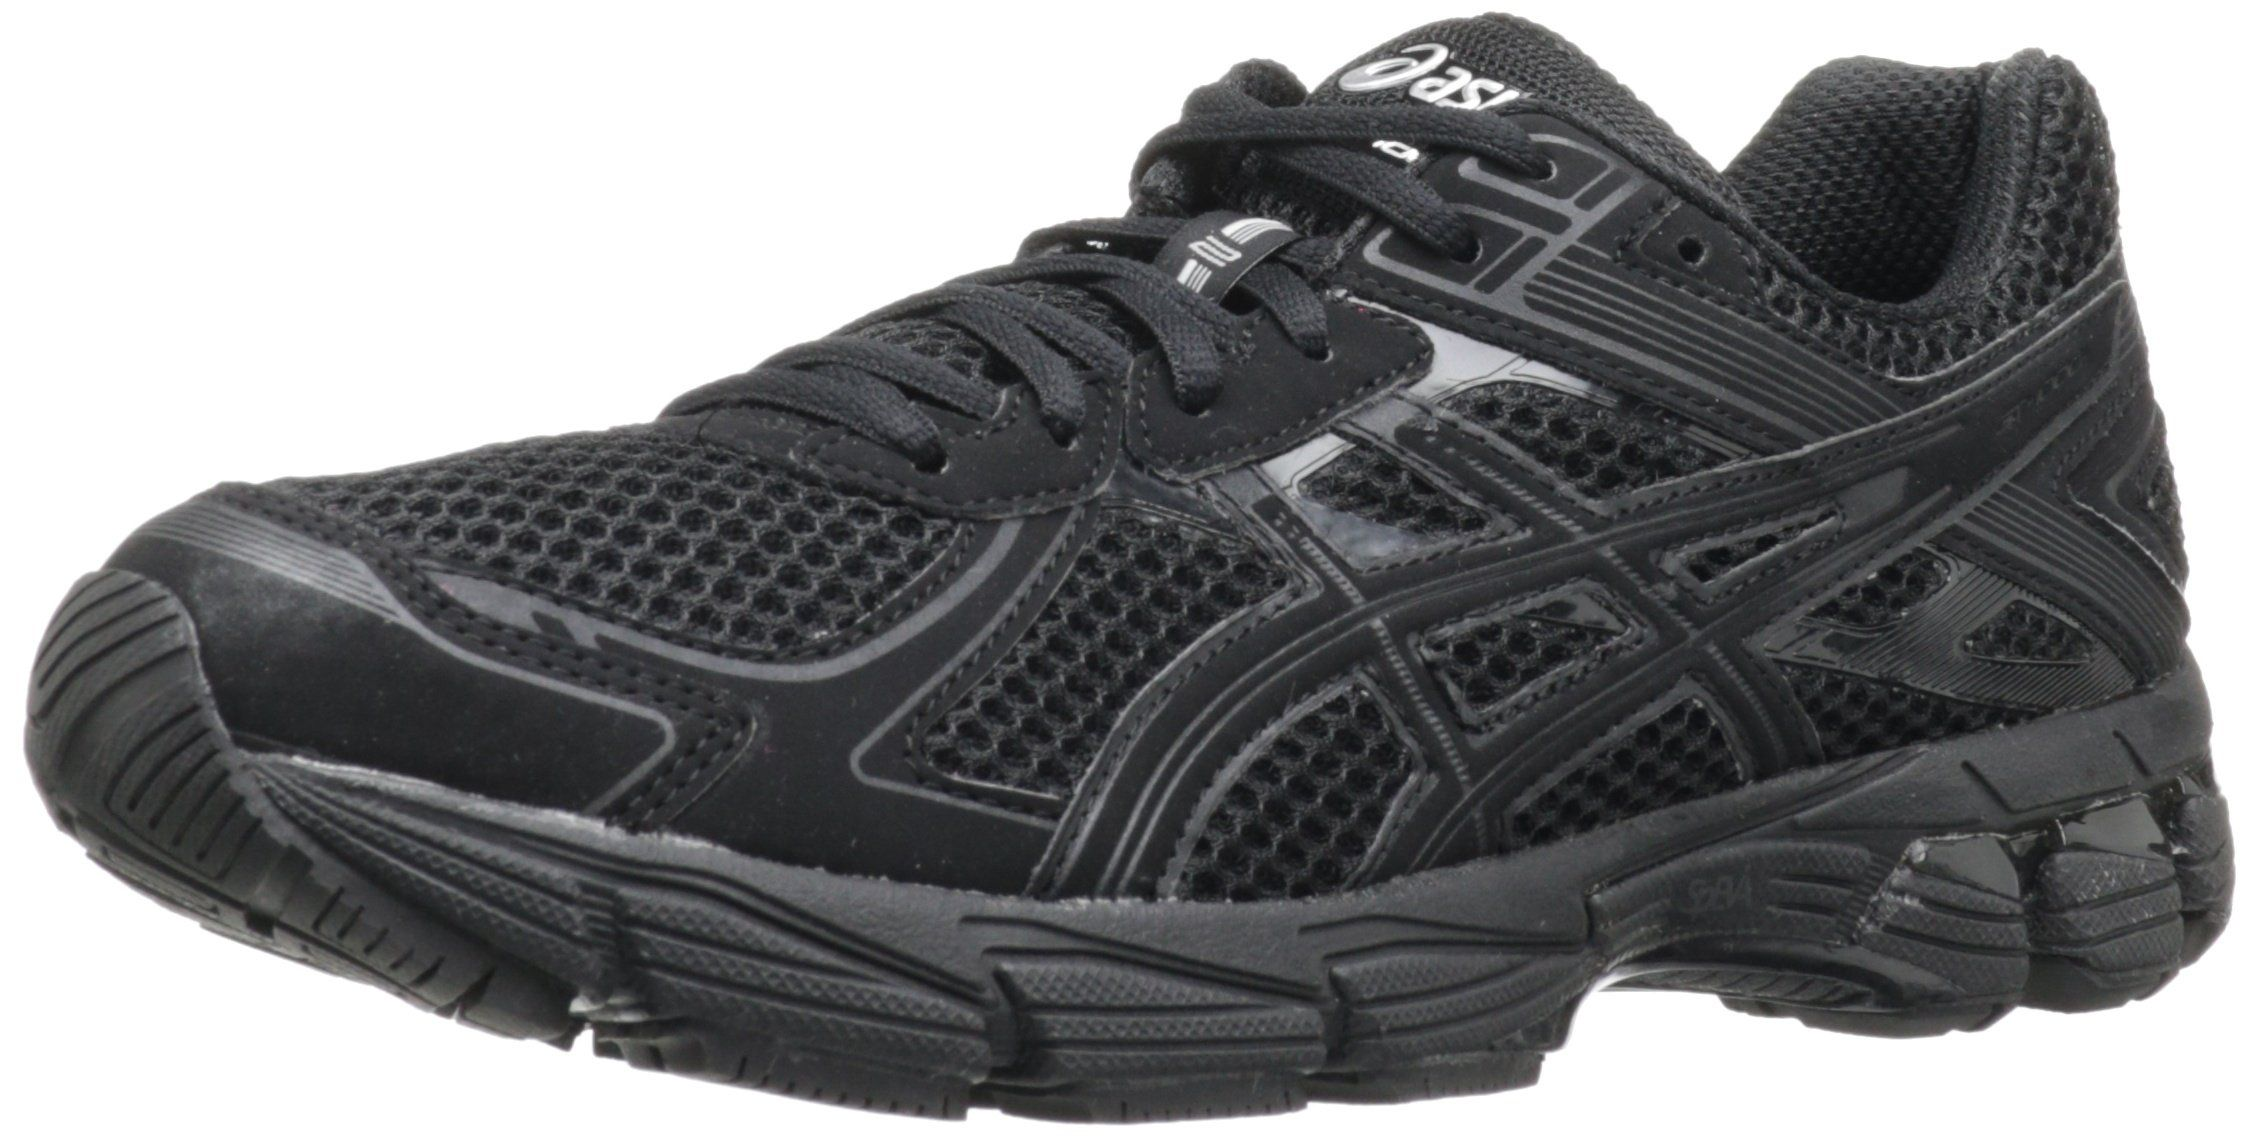 buy all black asics shoes cheap